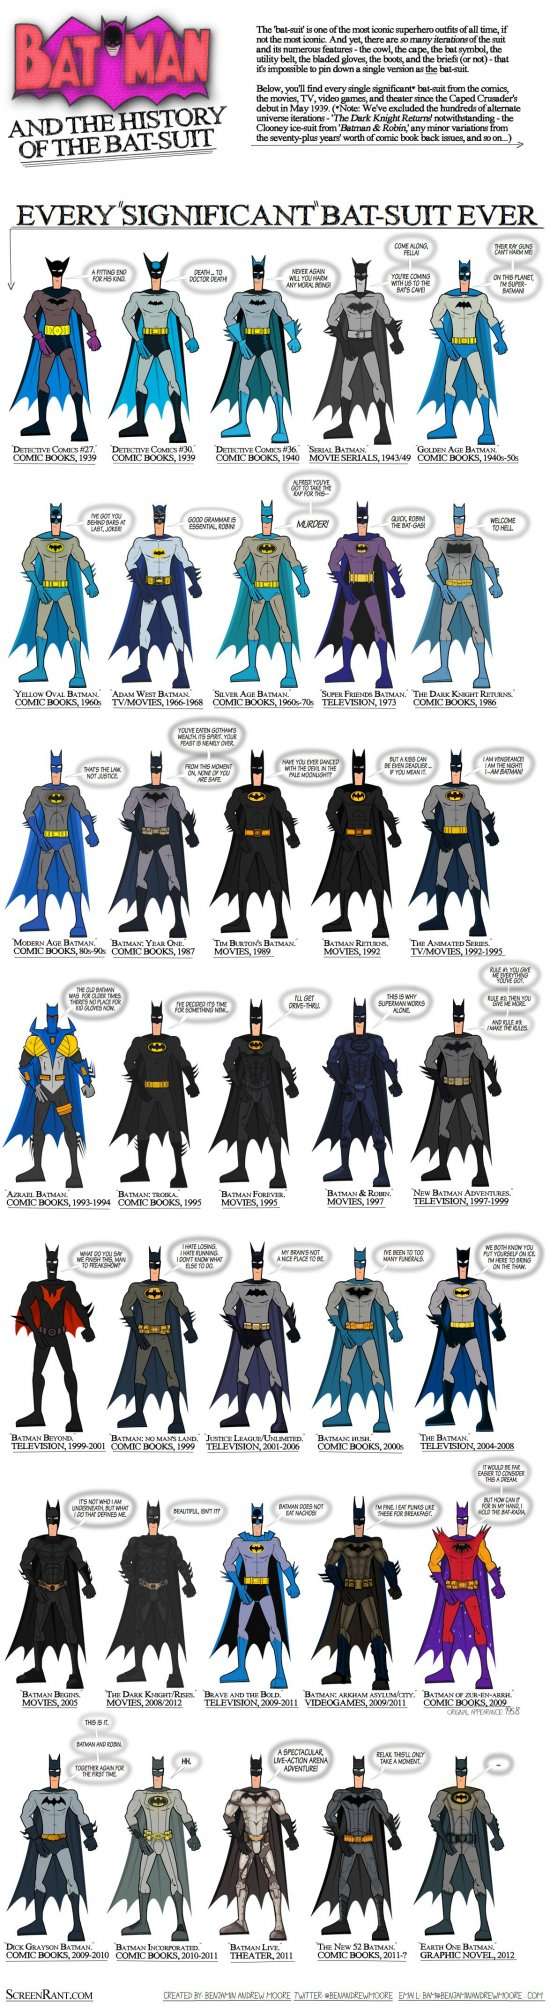 Batman evolves - cool infographic of all the Batman outfits ever worn